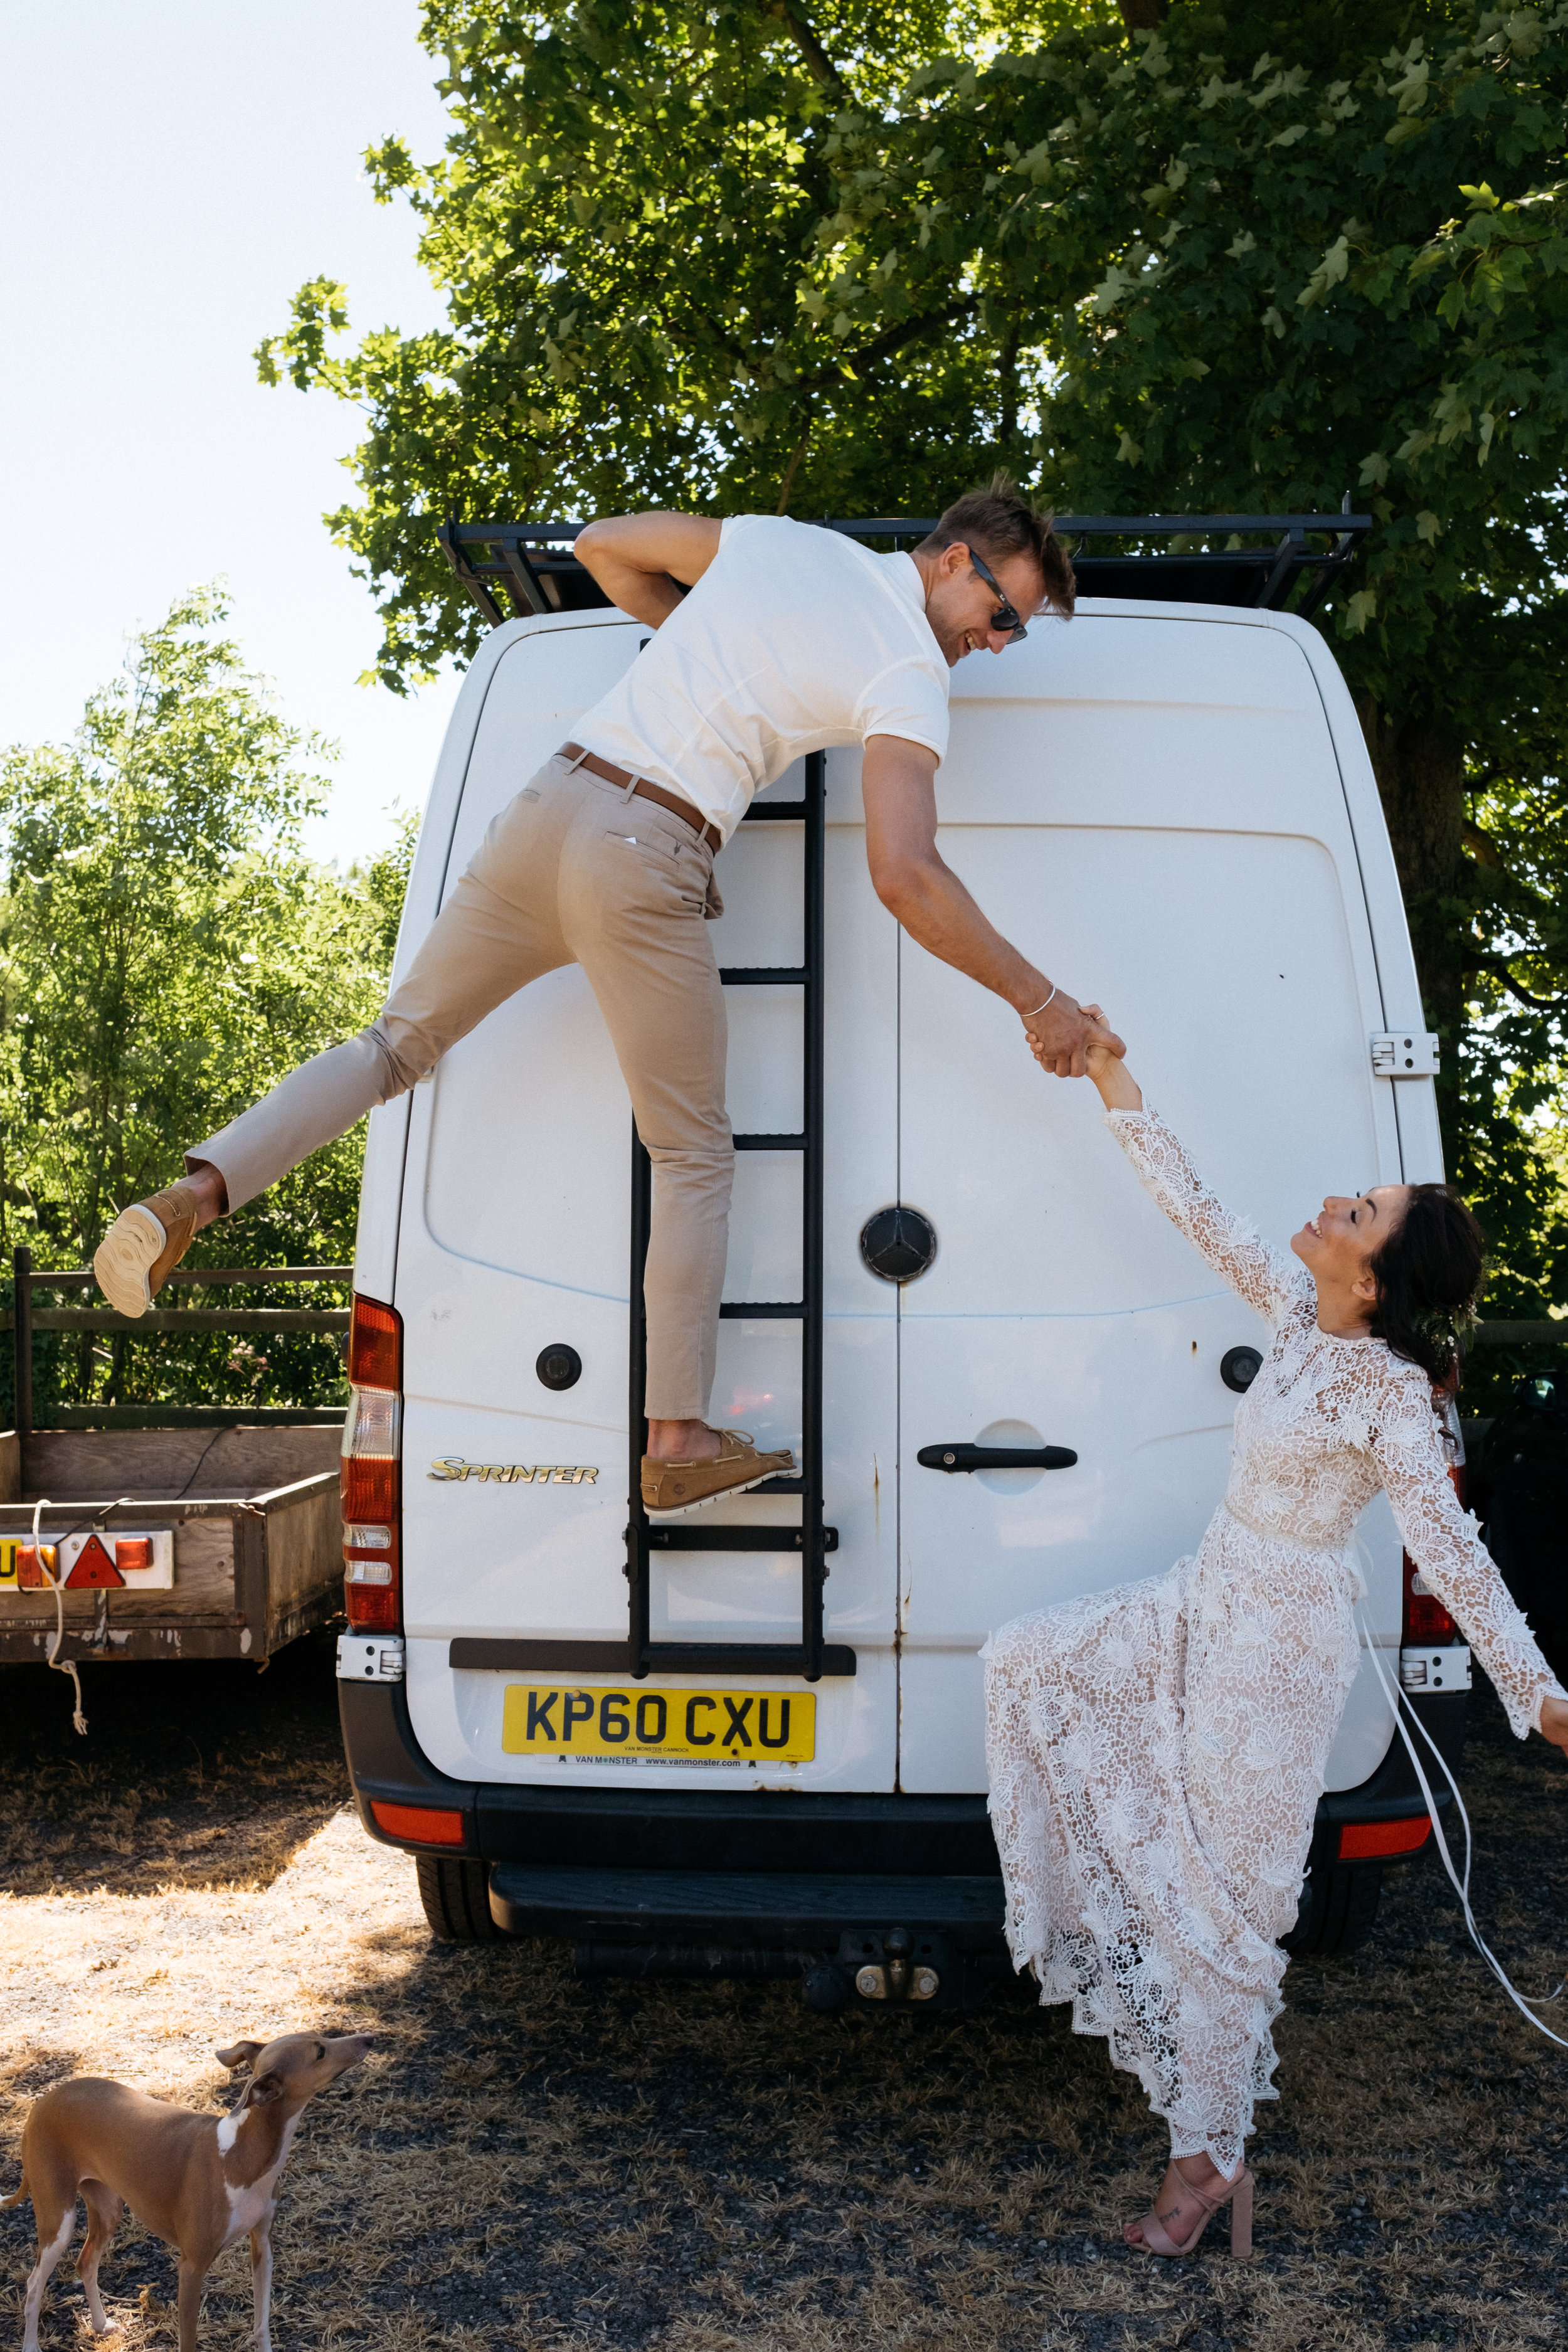 Bride and groom living the van life on their wedding day